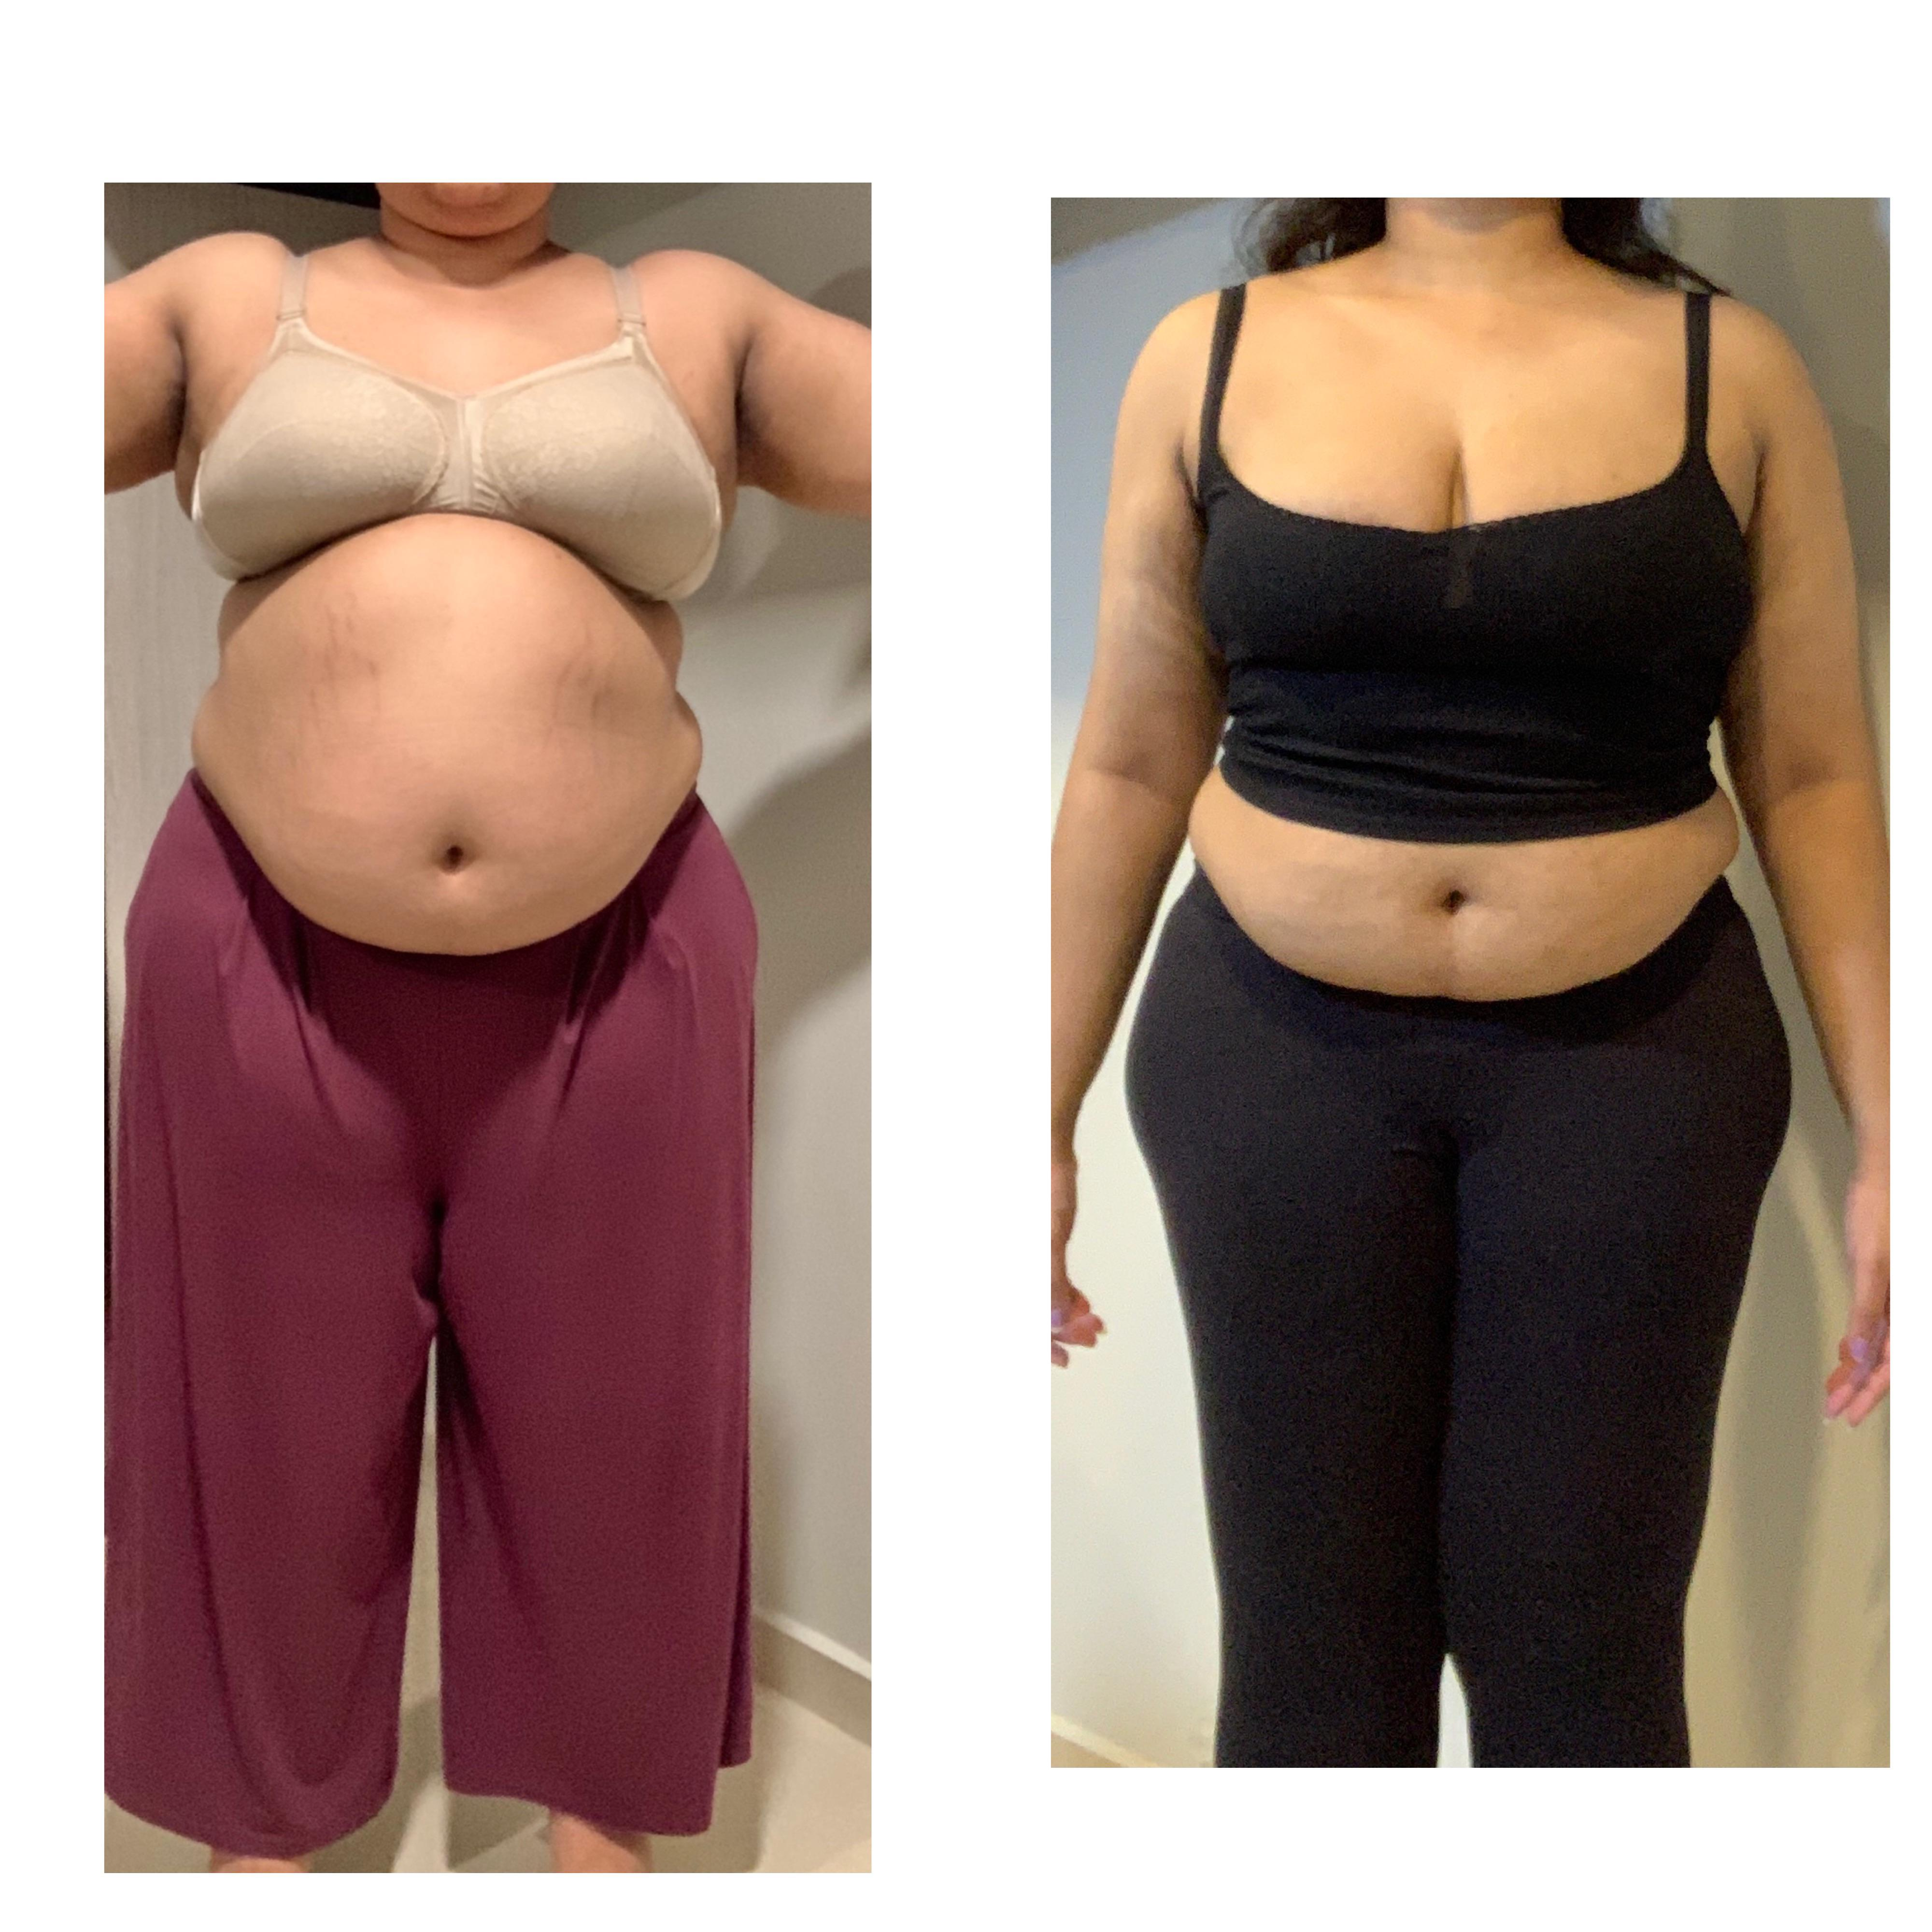 60 lbs Weight Loss Before and After 5 feet 7 Female 303 lbs to 243 lbs